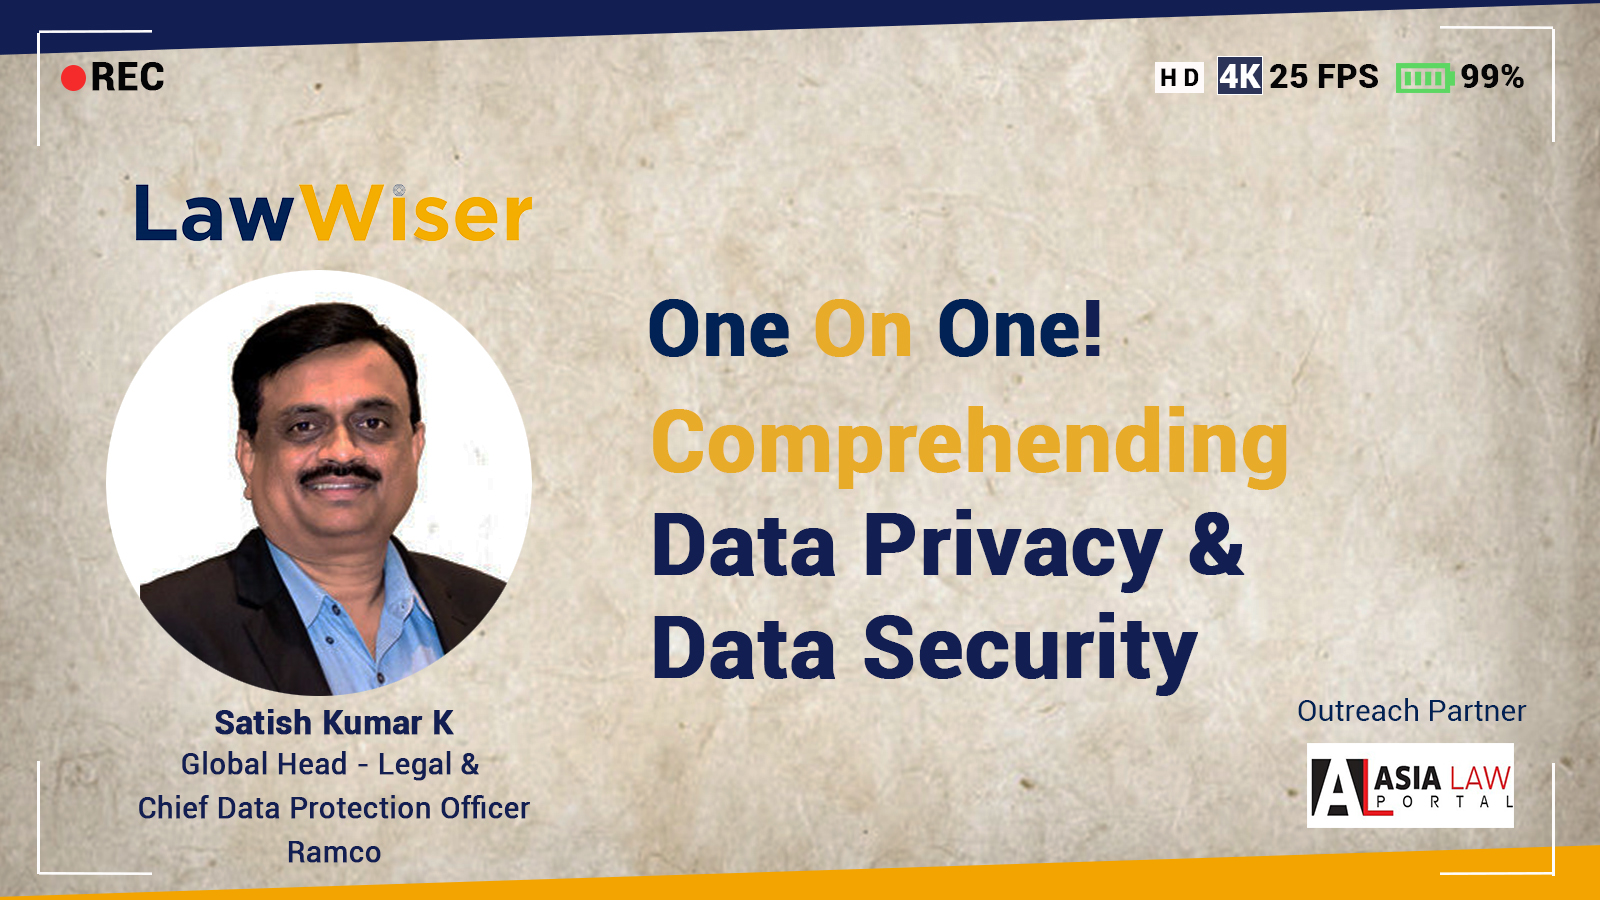 One On One | Comprehending Data Privacy & Data Security